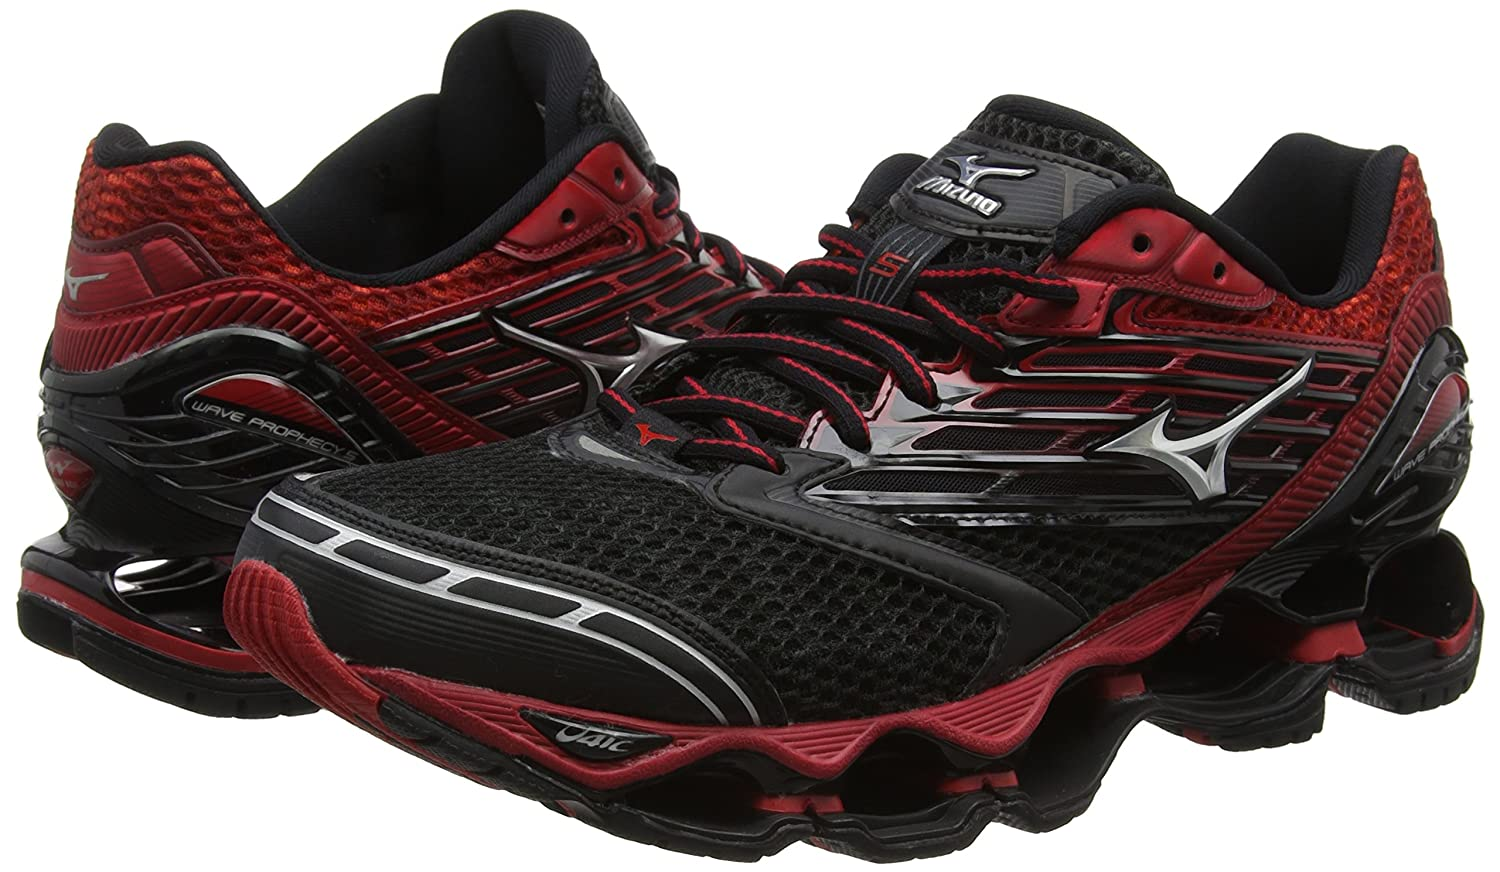 925f15f41d5f Mizuno Men's Wave Prophecy 5 Black Running Shoes-6 UK/India (39 EU)  (J1GC160003): Buy Online at Low Prices in India - Amazon.in